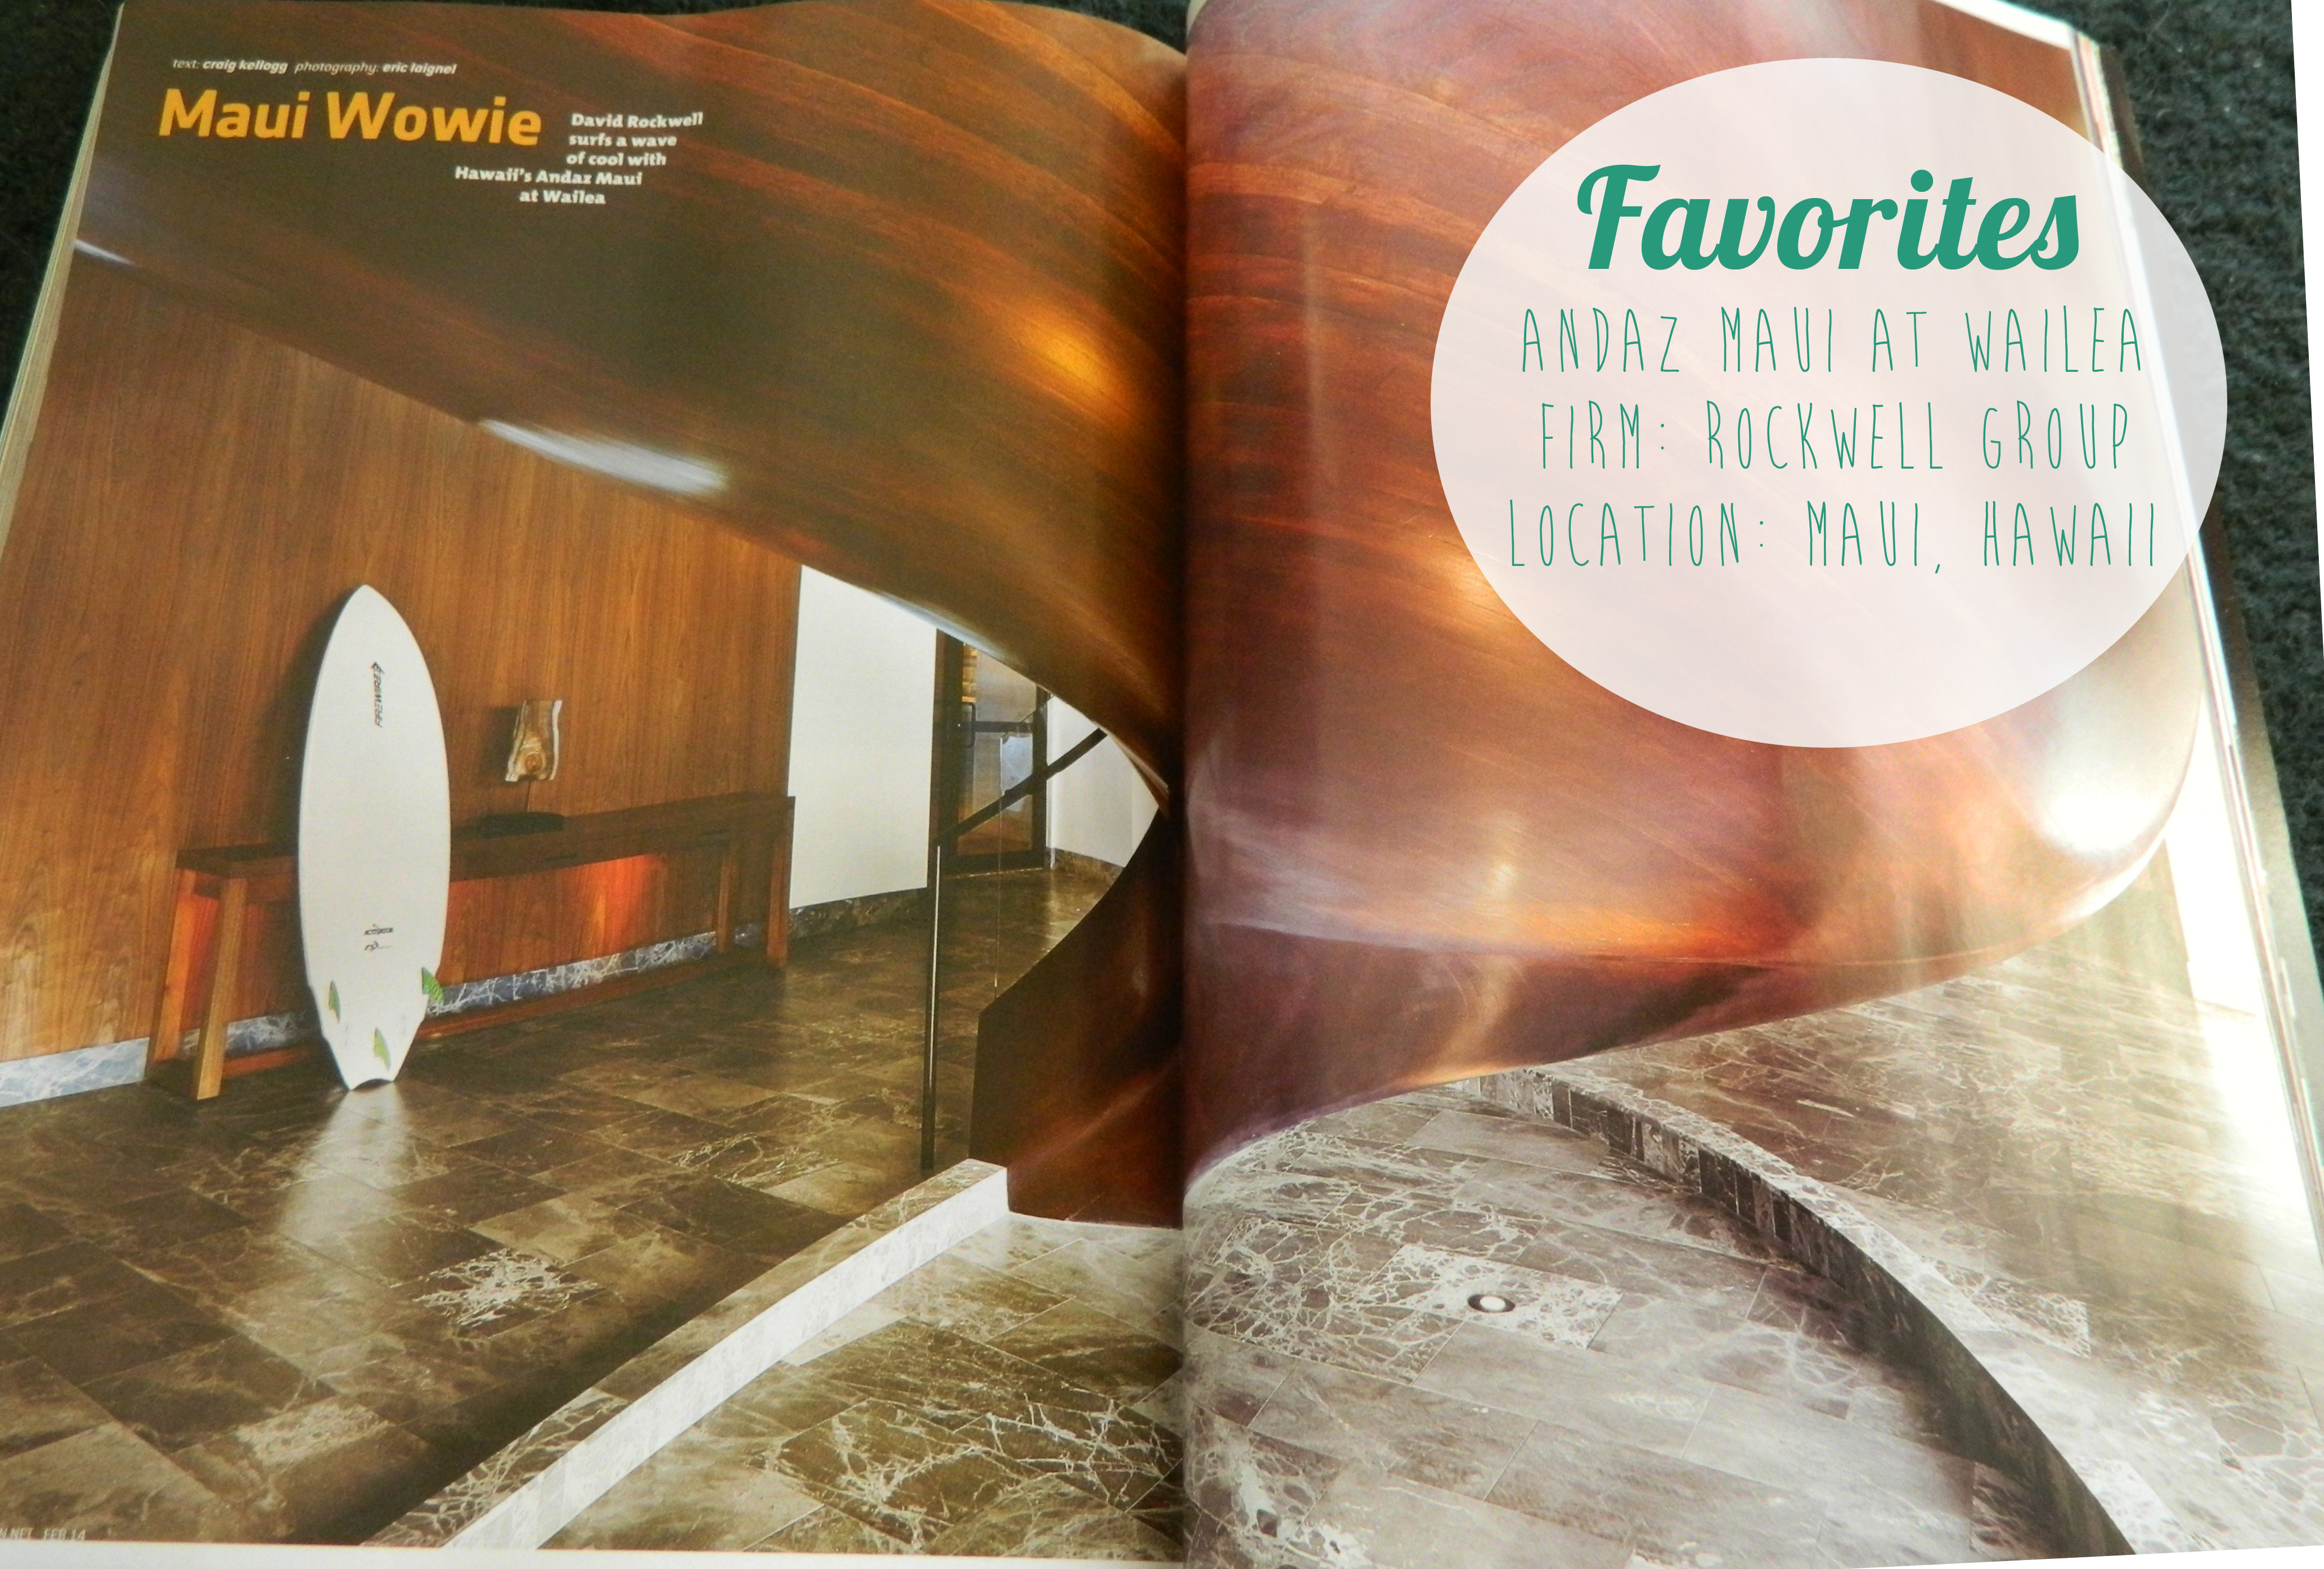 Alrighty My Final Favorite Pick For This Issue Is The Andaz Maui Resort In Hawaii By Rockwell Group I Cant Get Enough Of Staircase